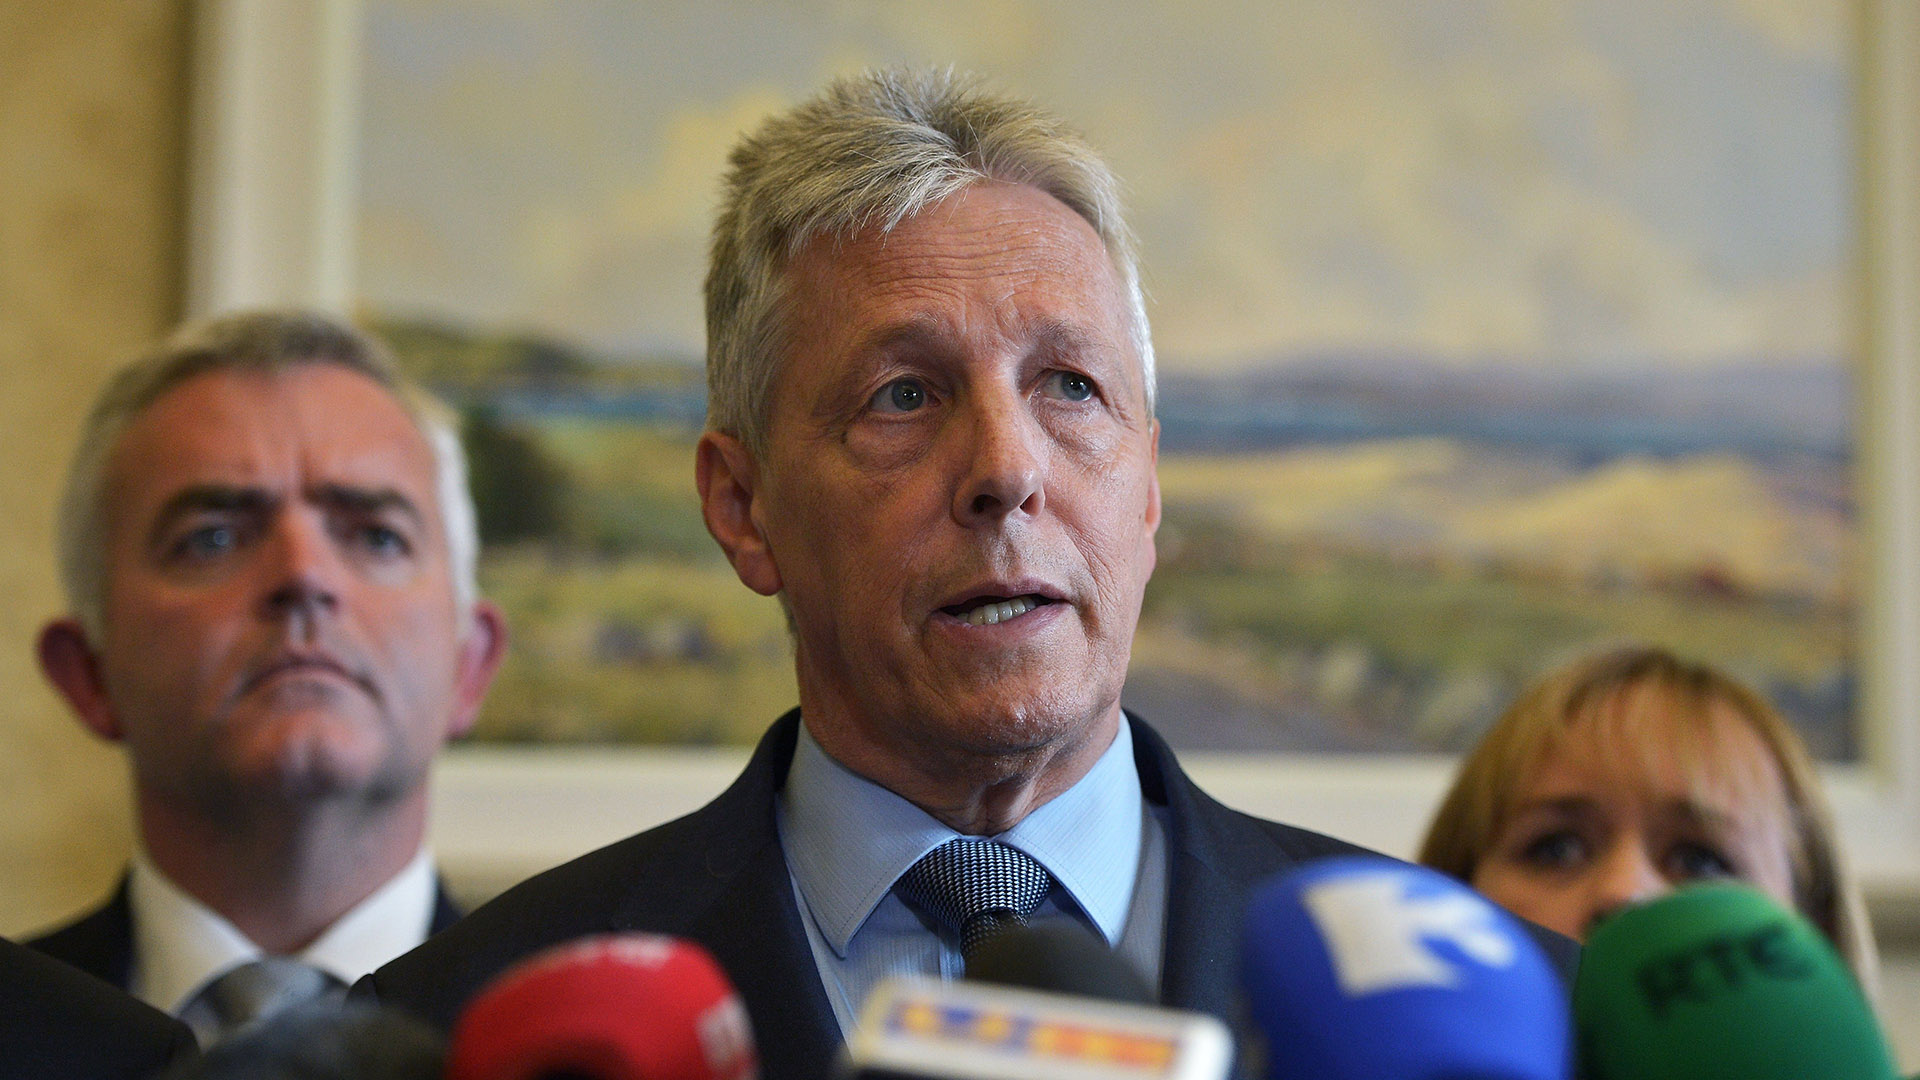 Peter Robinson: We Cannot do Business as Usual